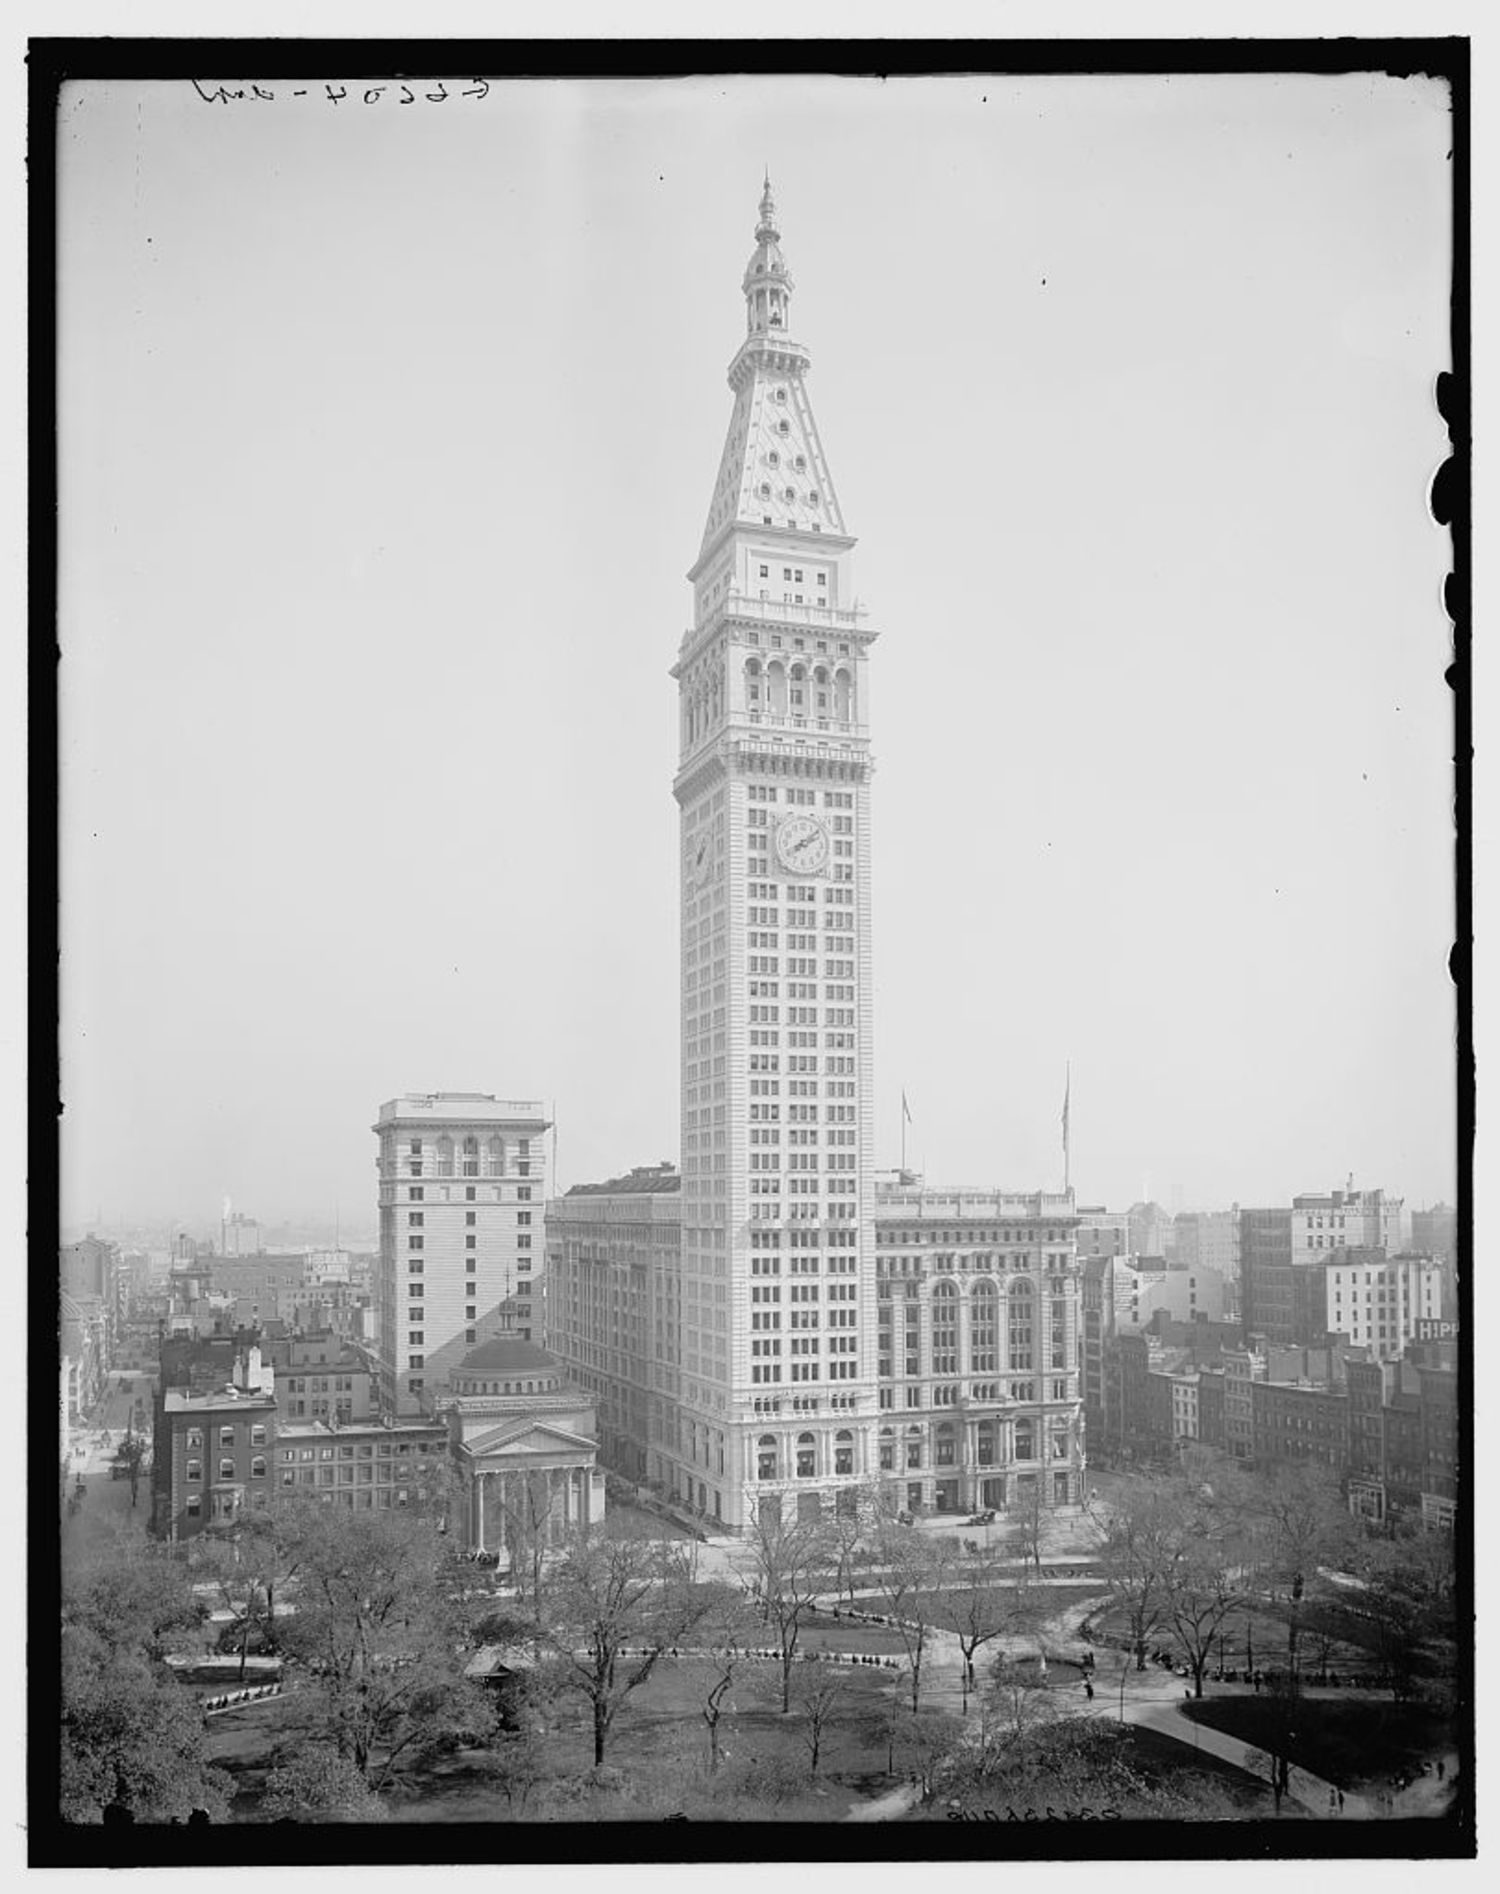 Metropolitan Life Insurance Building, Madison Square, New York, N.Y. ca. 1910